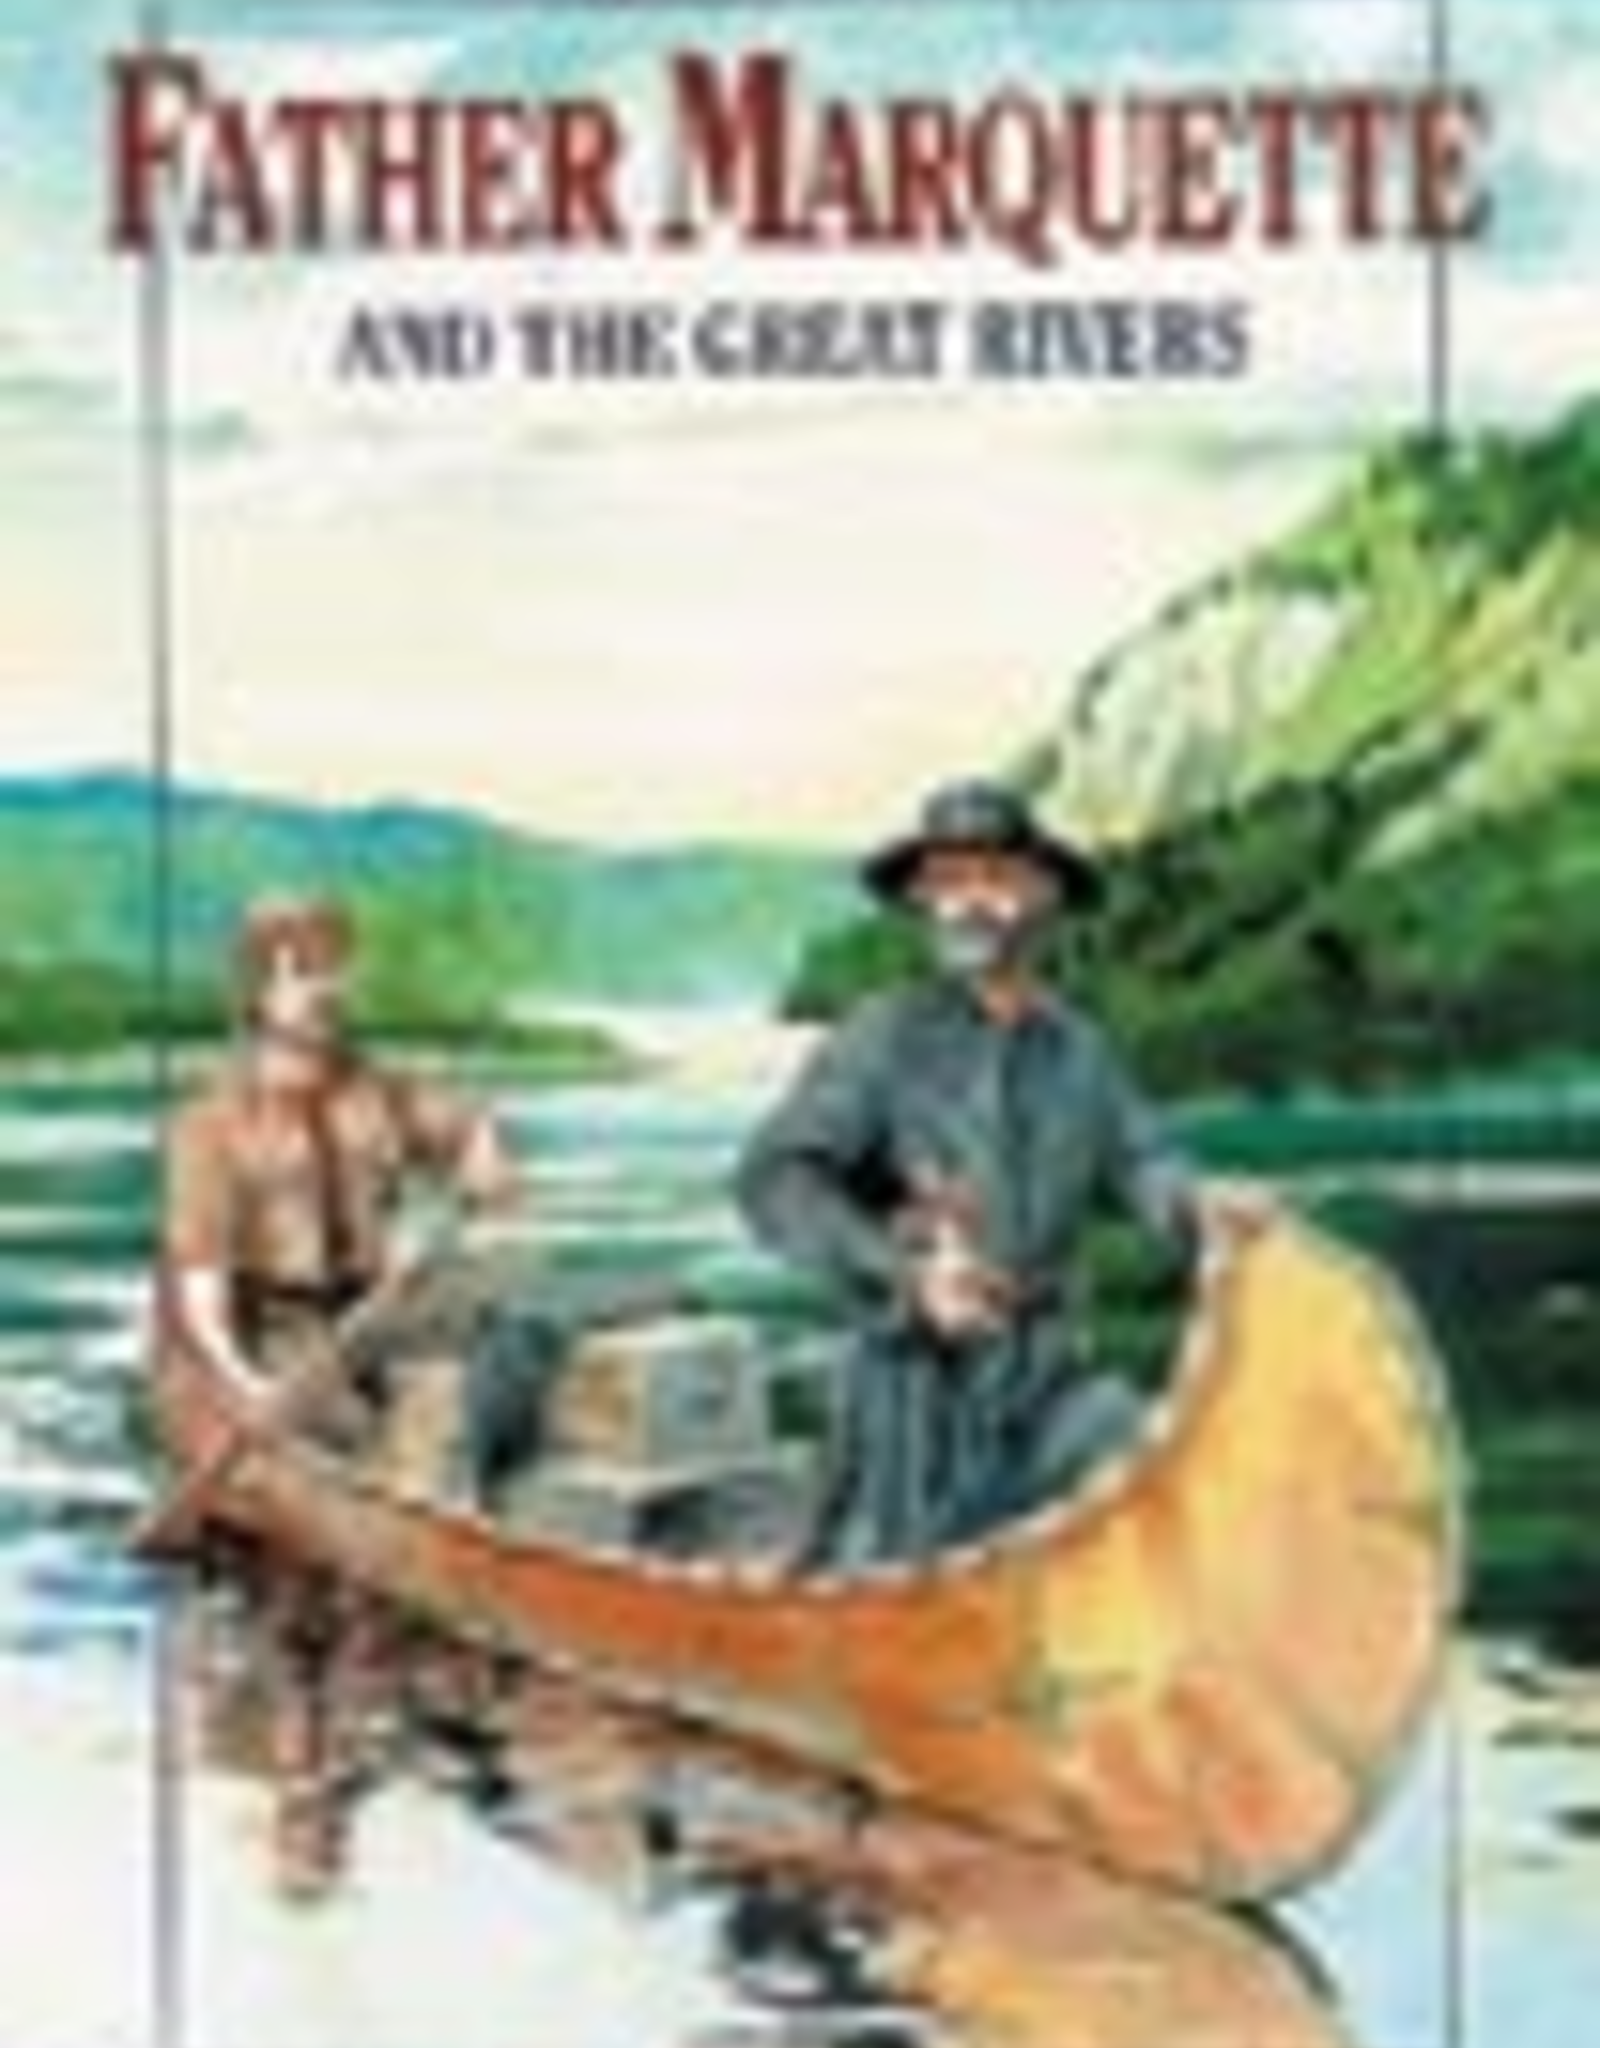 Ignatius Press Father Marquette and the Great Rivers, by August Derleth (paperback)